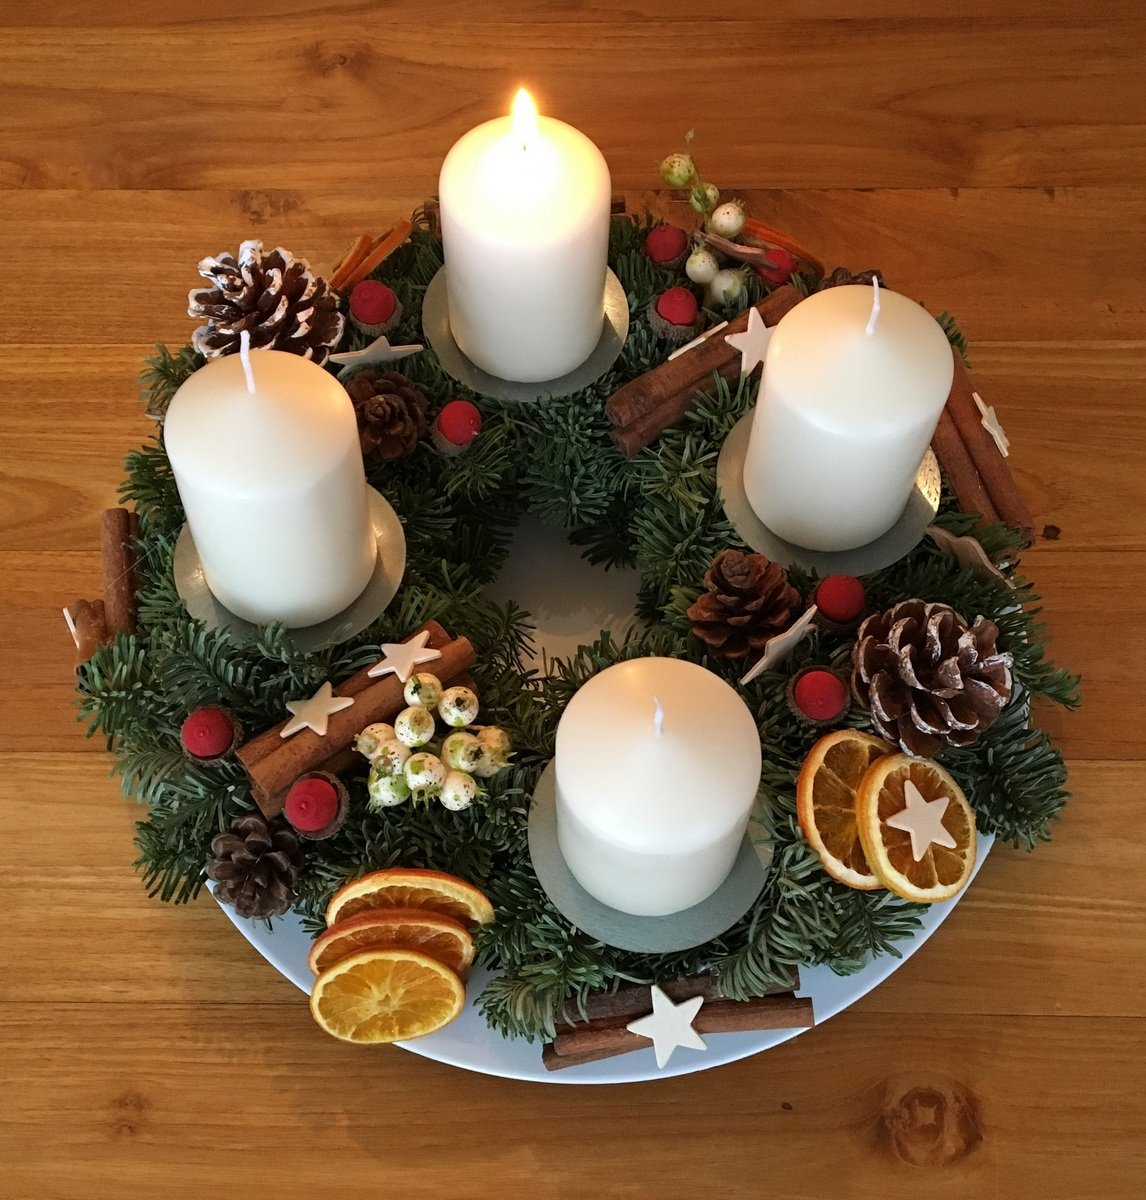 Adventkranz am 1. Advent